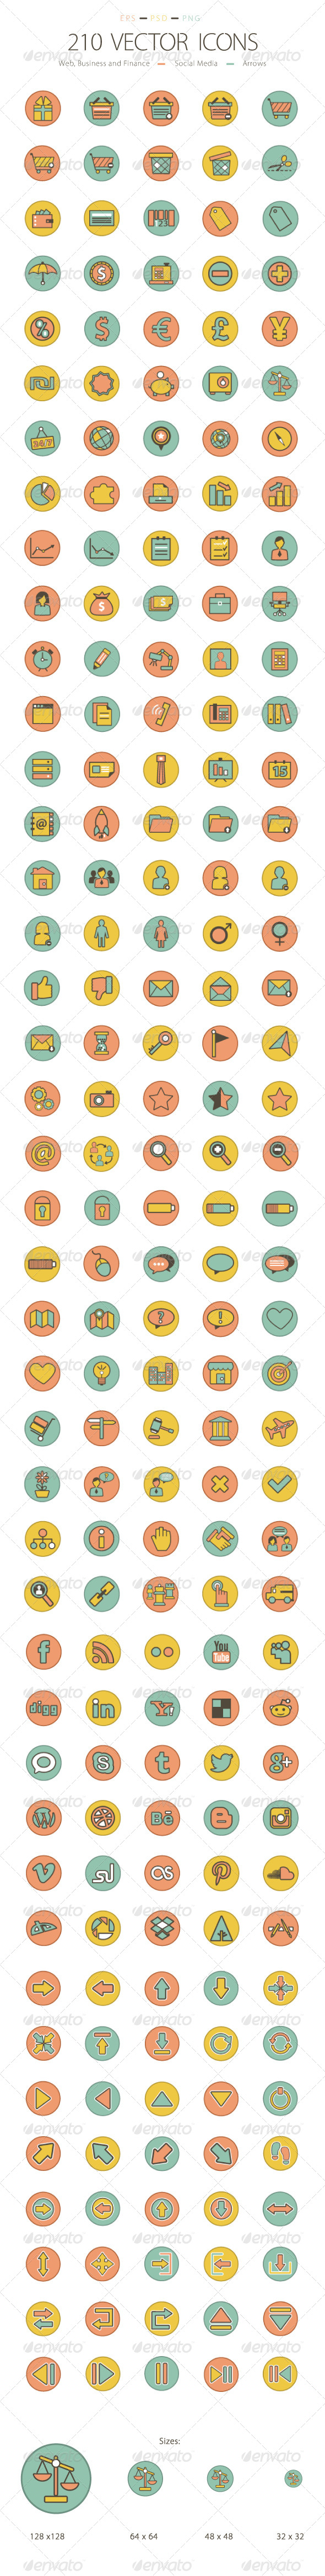 GraphicRiver Set of 210 Icons 6231606